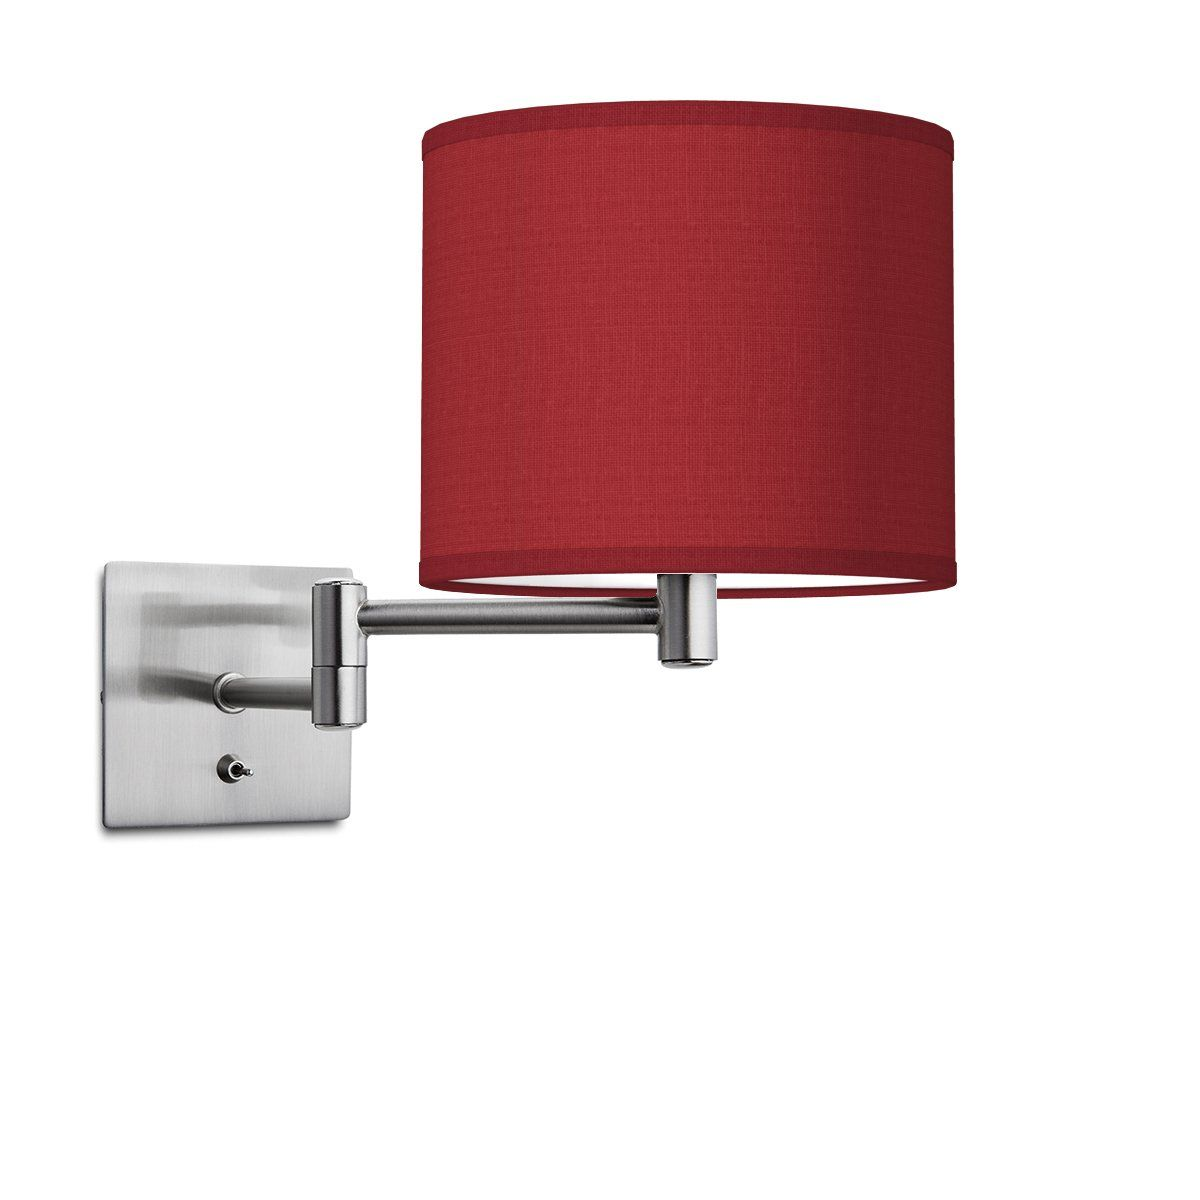 HOME SWEET HOME wandlamp swing bling Ø 20 cm - Pompeian red